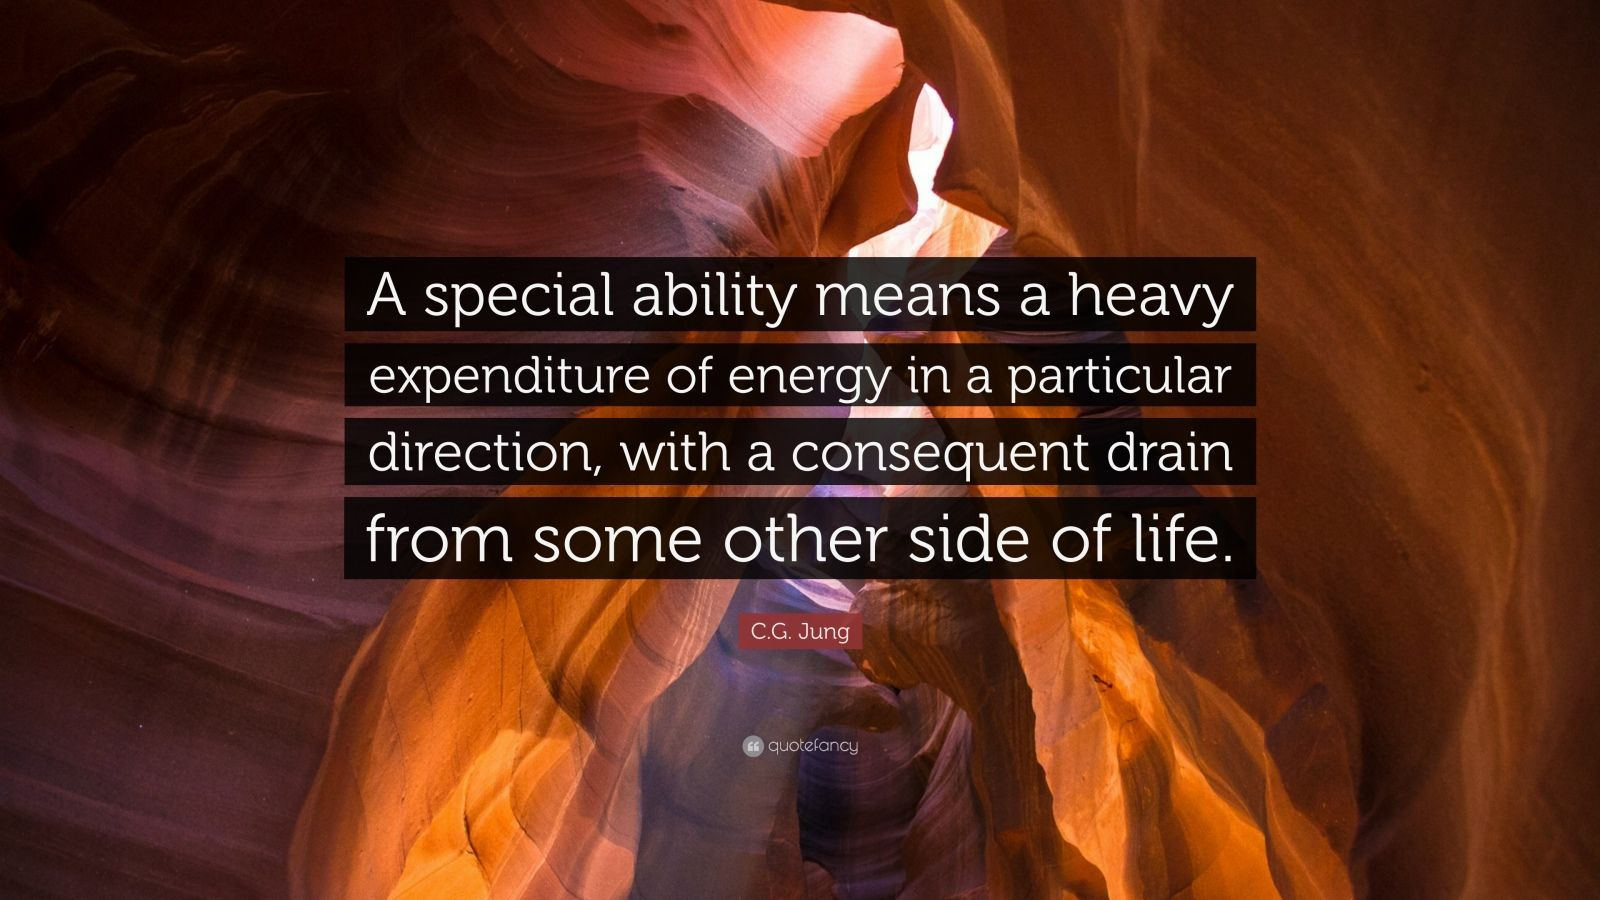 """C.G. Jung Quote: """"A special ability means a heavy expenditure of energy in a particular direction, with a consequent drain from some other side of life."""""""